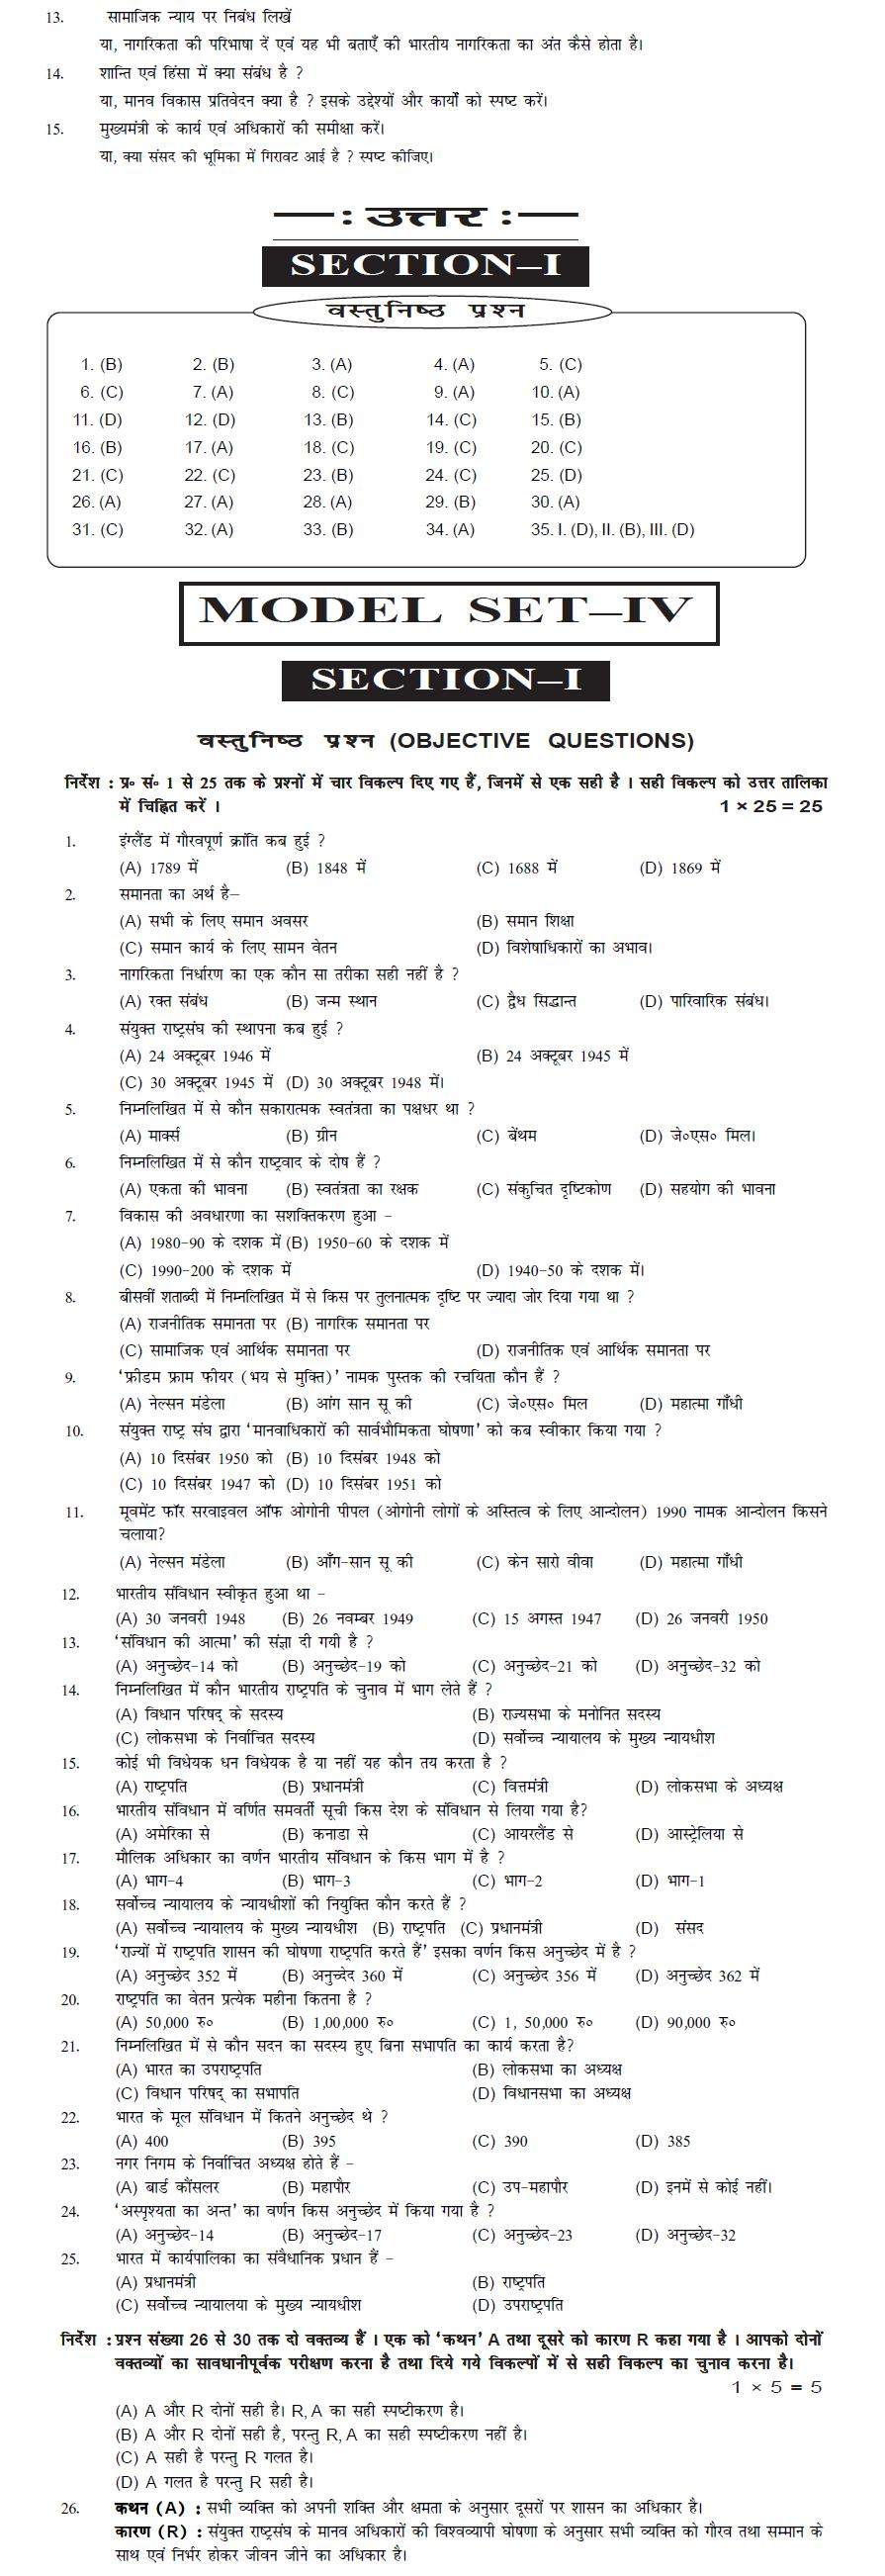 Bihar Board Class XI Arts Model Question Papers - Political Science